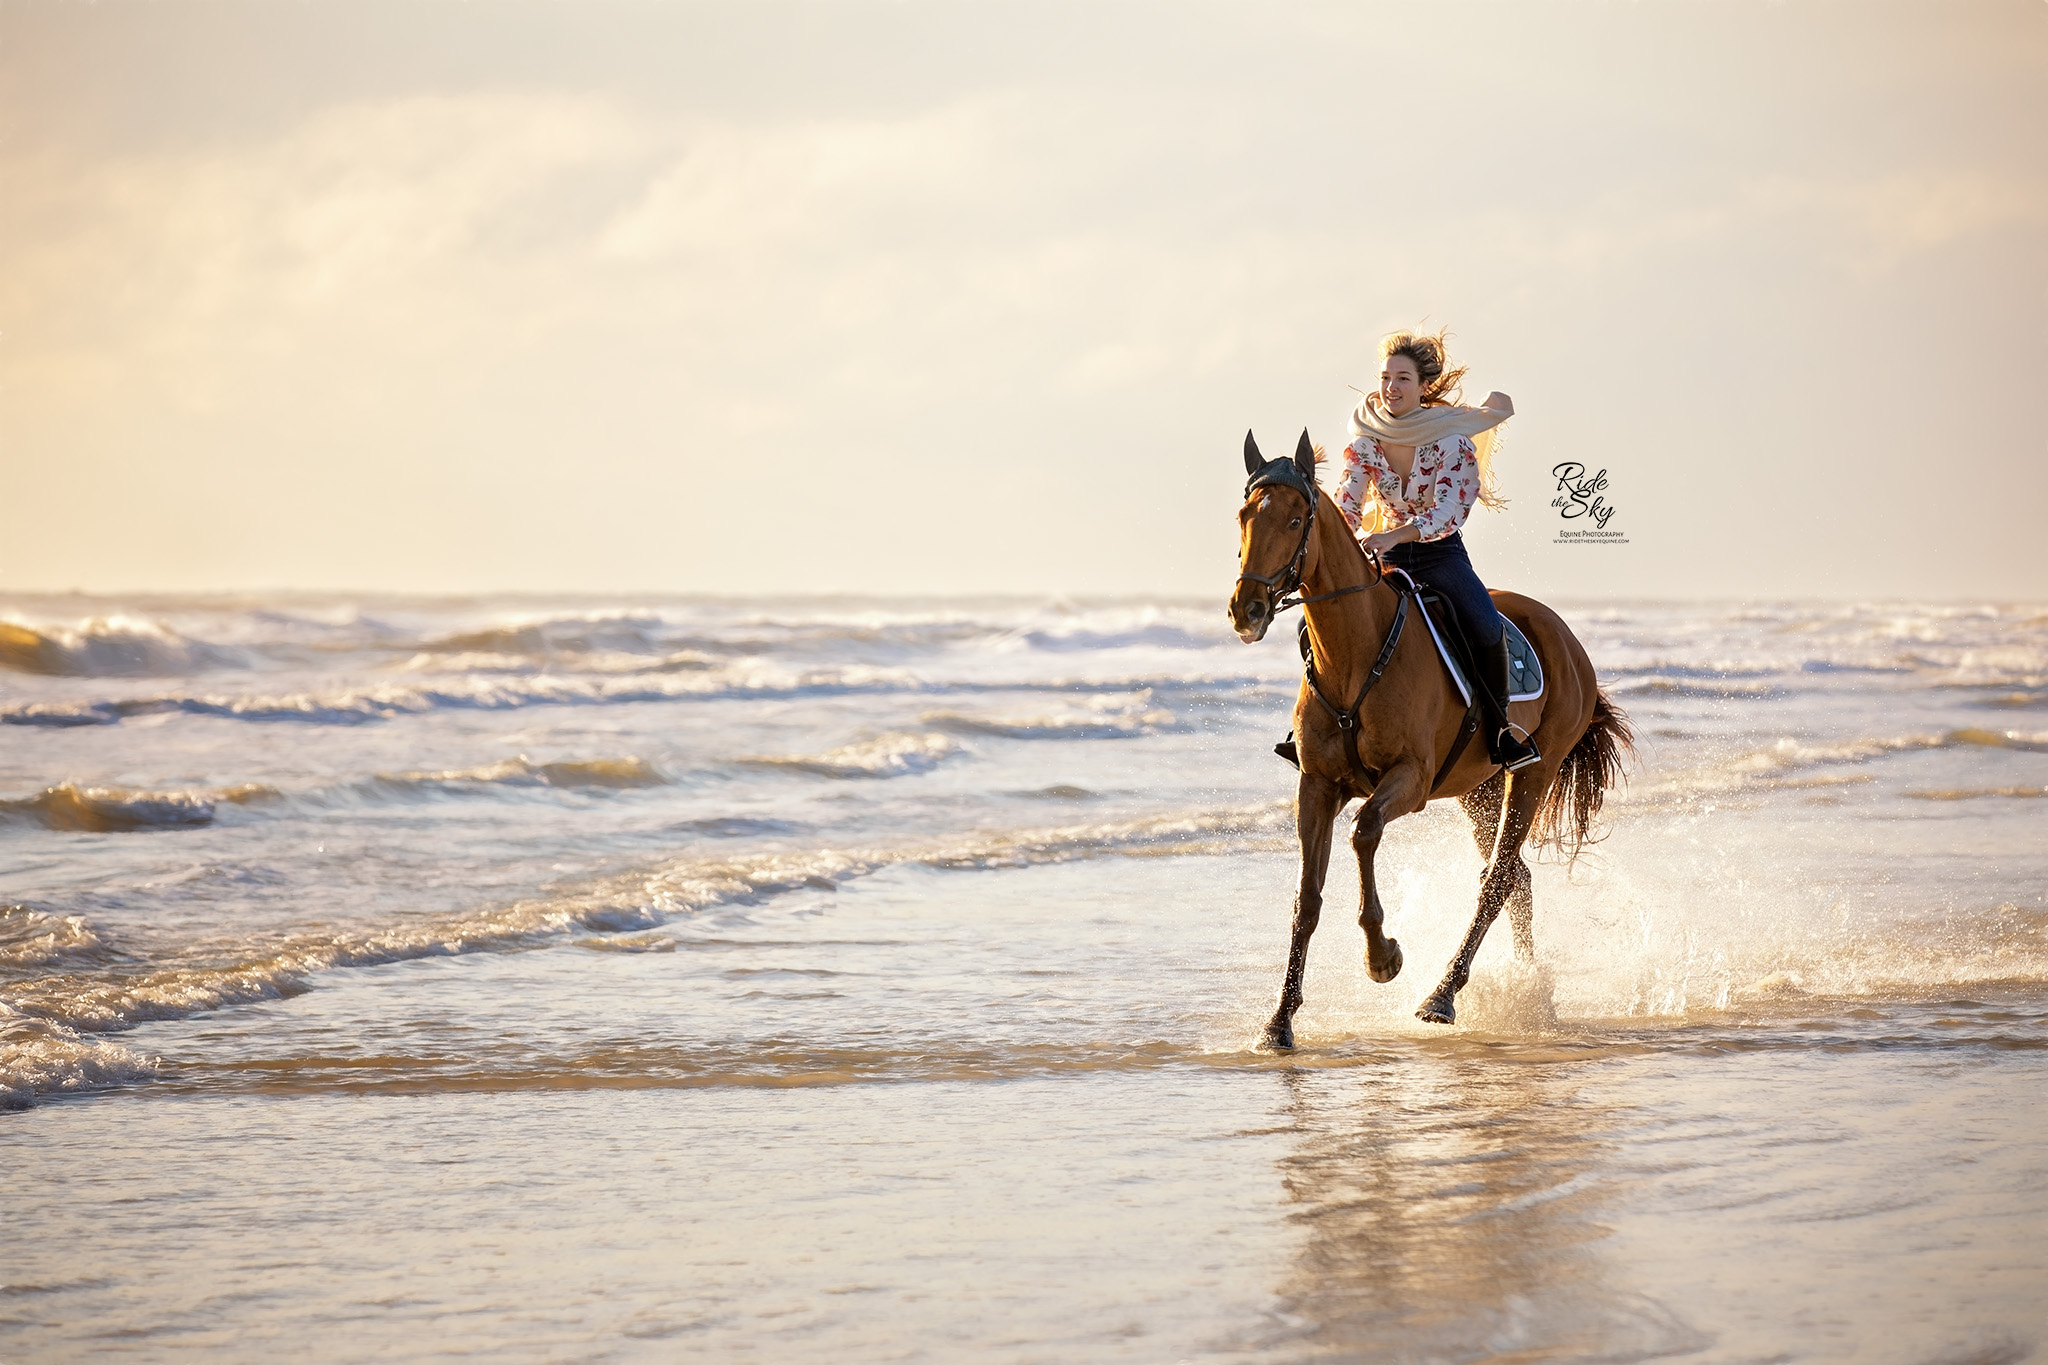 Beach Equine Photography of Girl Riding Horse on the Beach in the Ocean Waves